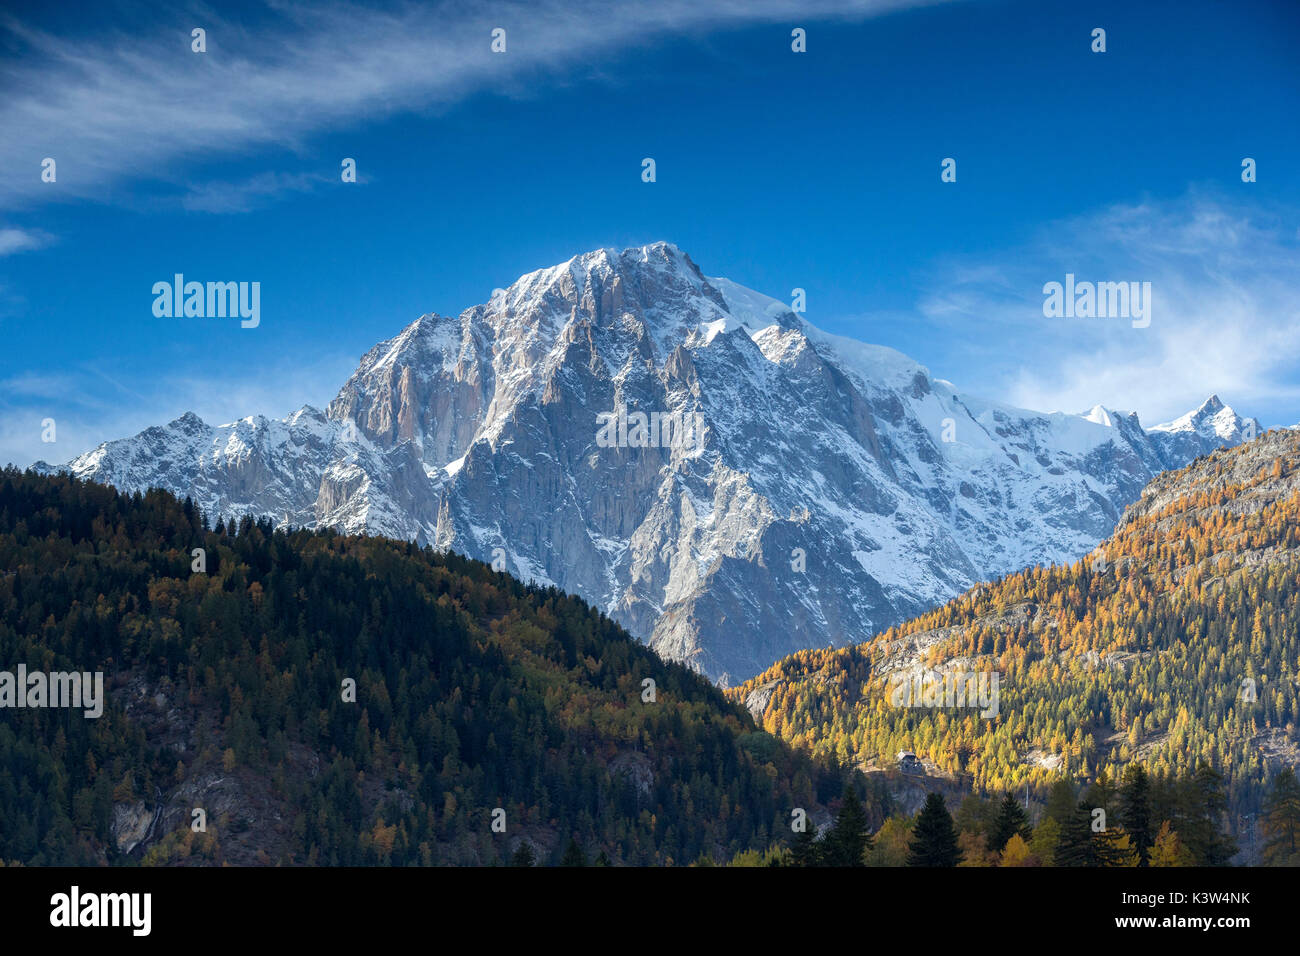 Monte Bianco at sunset, Aosta Valley, Italy, Europe - Stock Image